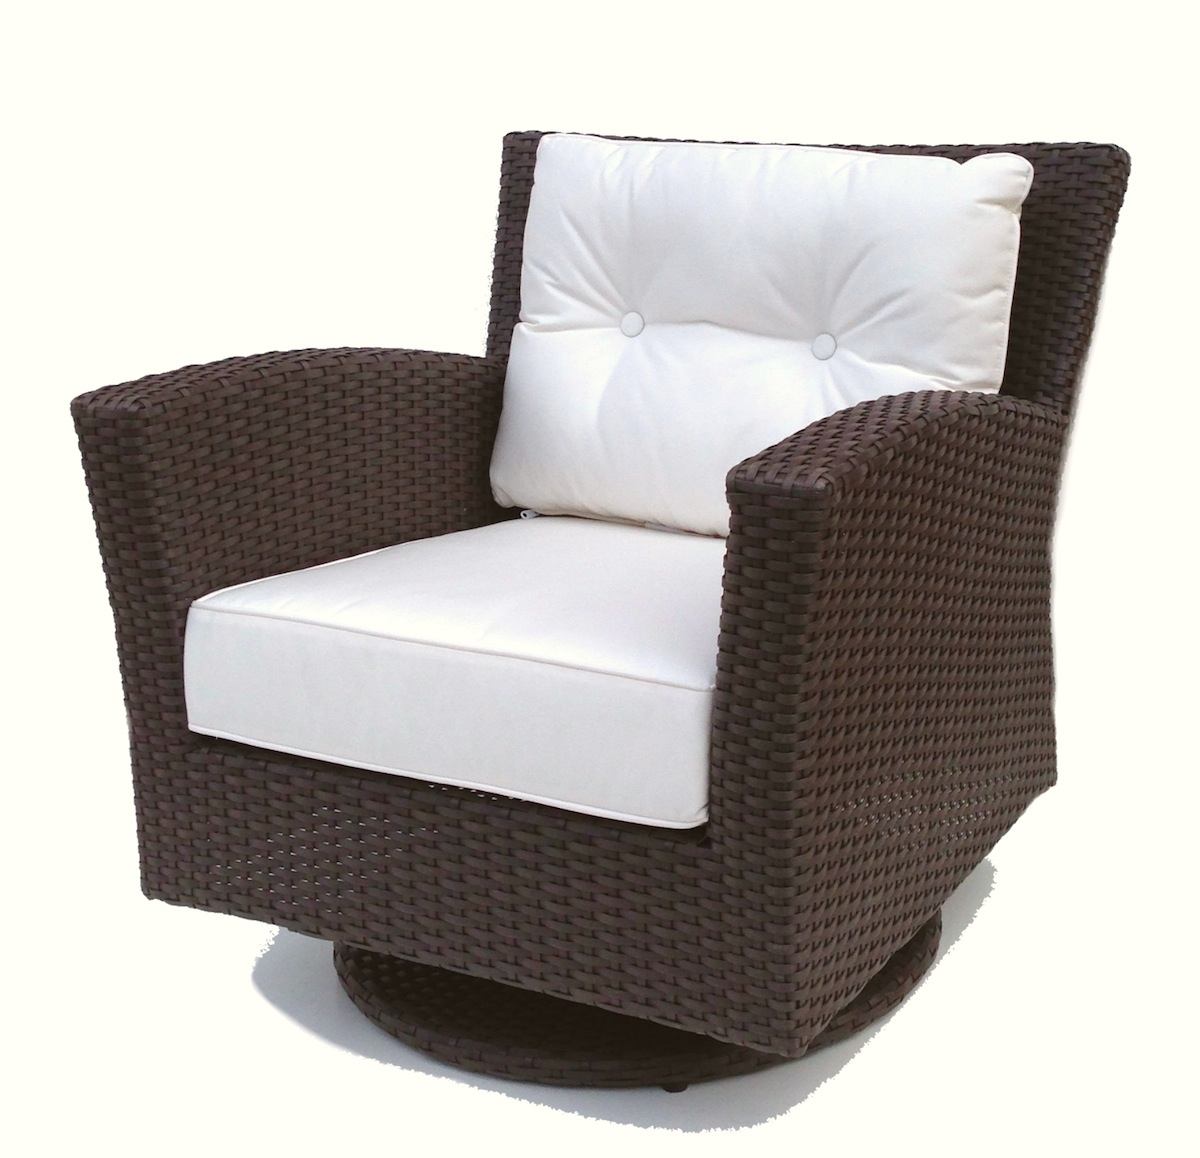 Wicker Patio Chair Outdoor Wicker Swivel Rocker Chair